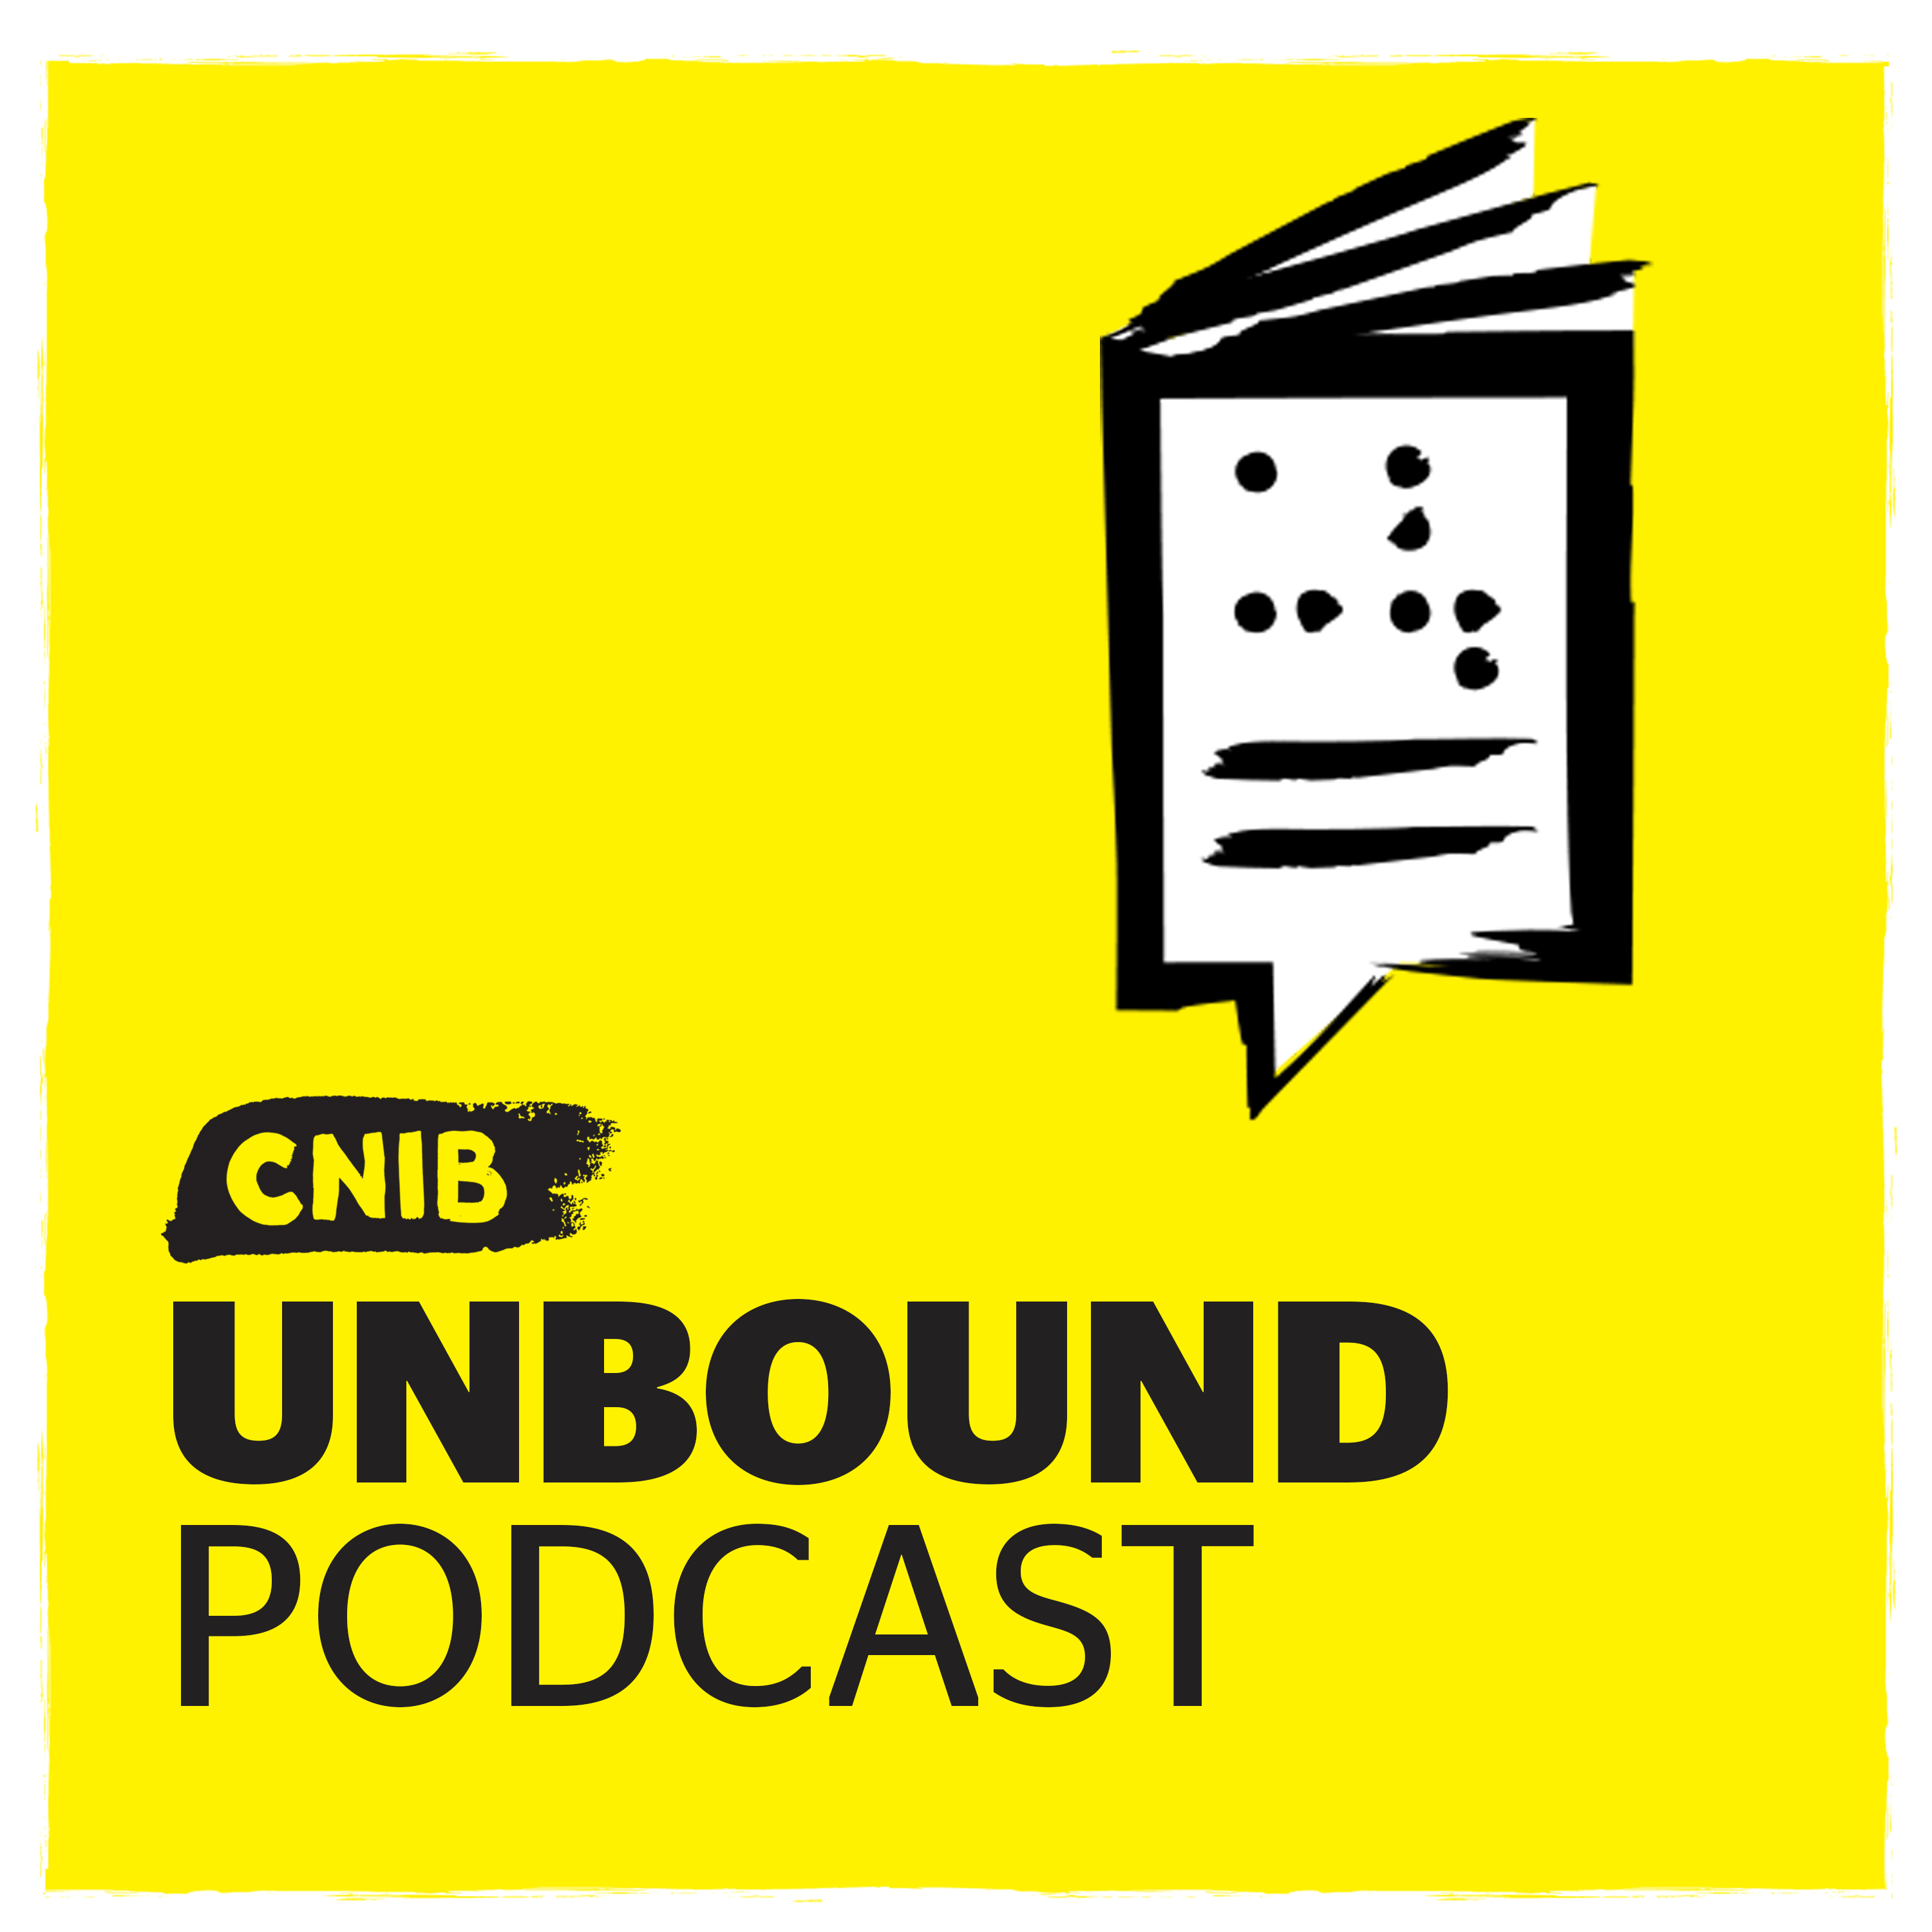 CNIB Unbound logo.  An illustration of a braille book with a speech bubble icon on yellow.